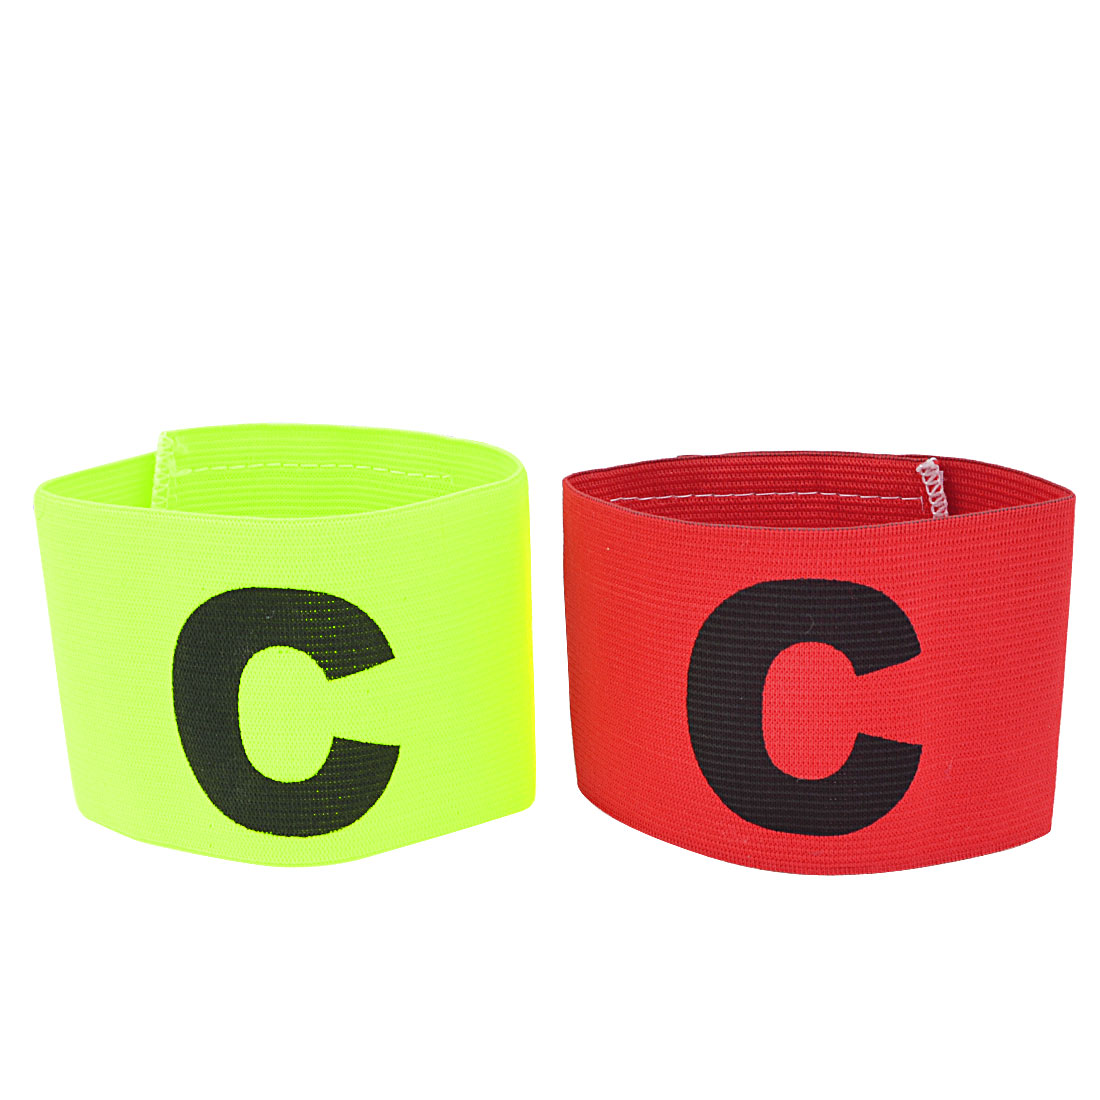 Unique Bargains Letter C Printed Stretchy Soccer Football Captain Armband Yellow Green Red... by